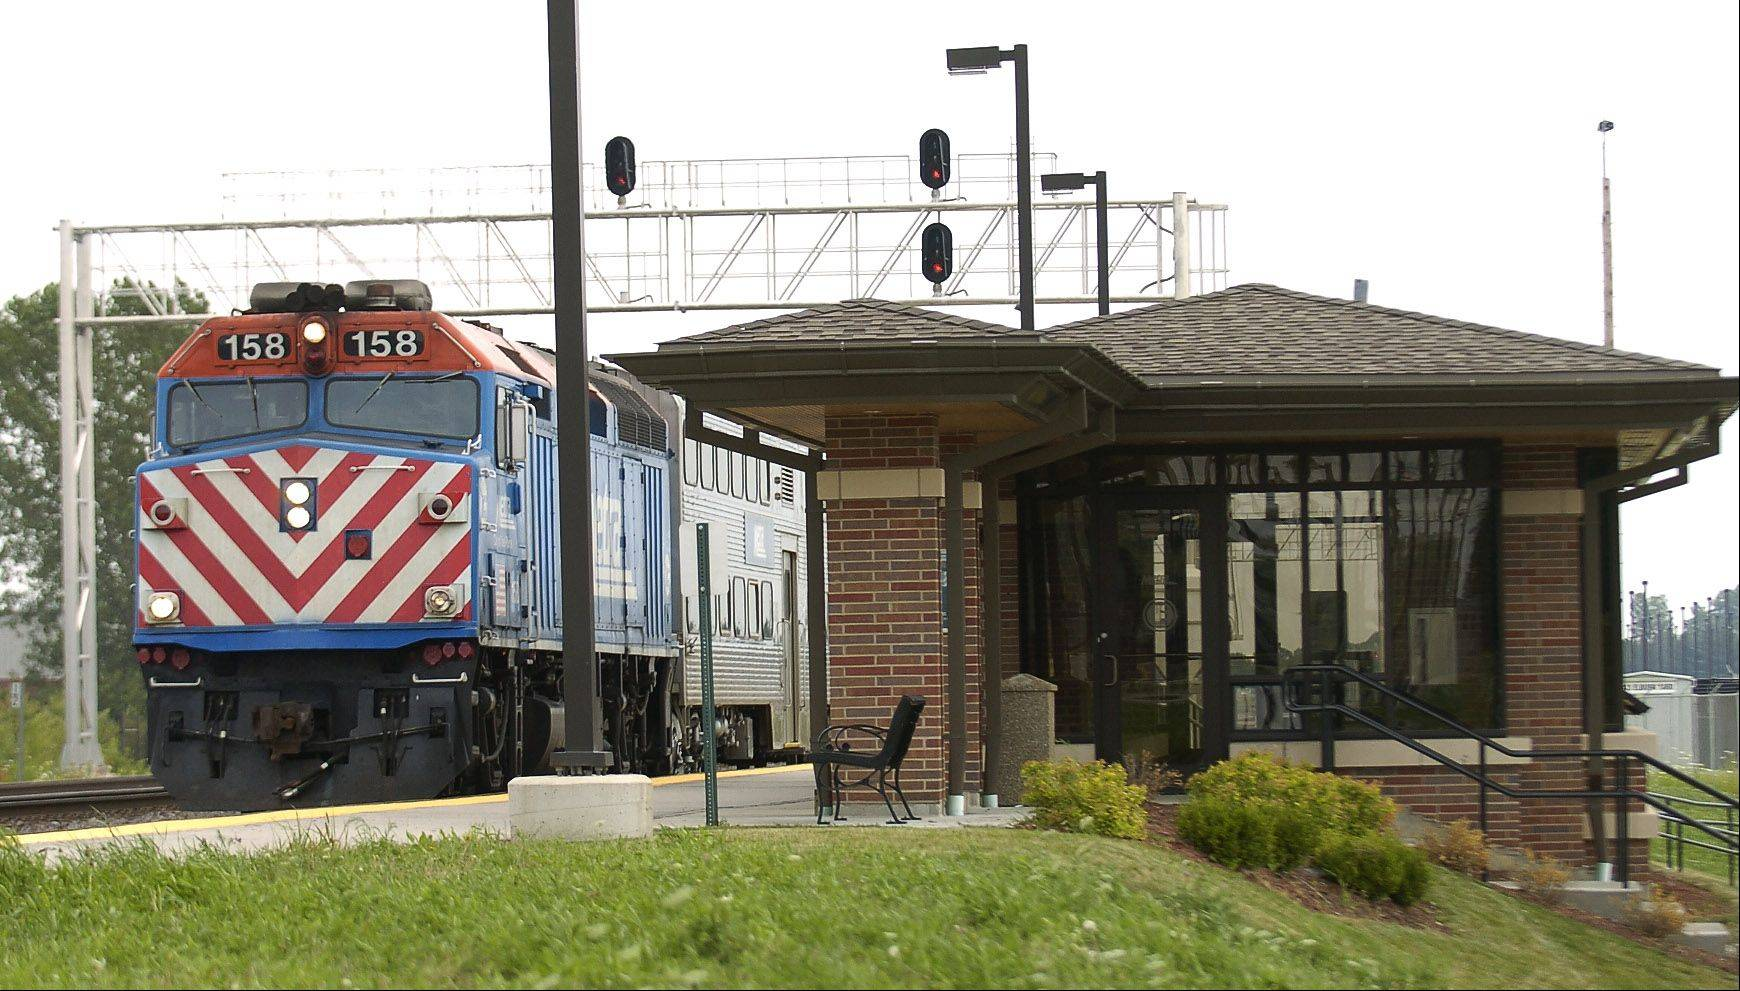 The Metra train station is on Railroad Avenue, accessible via Keslinger Road east of Main Street.